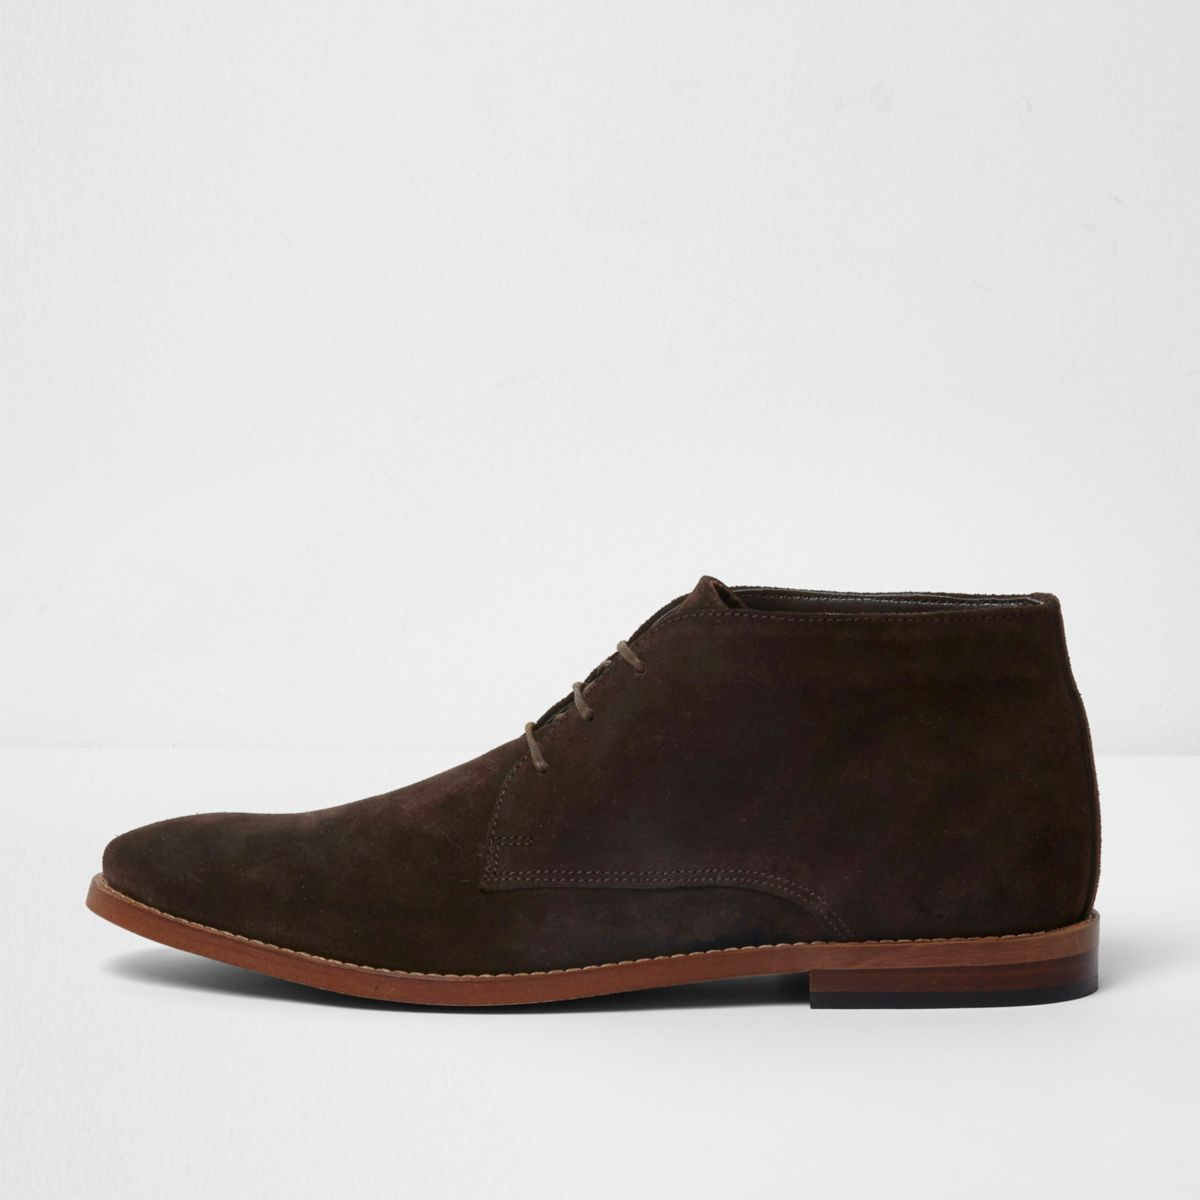 brown suede desert boots boots shoes boots